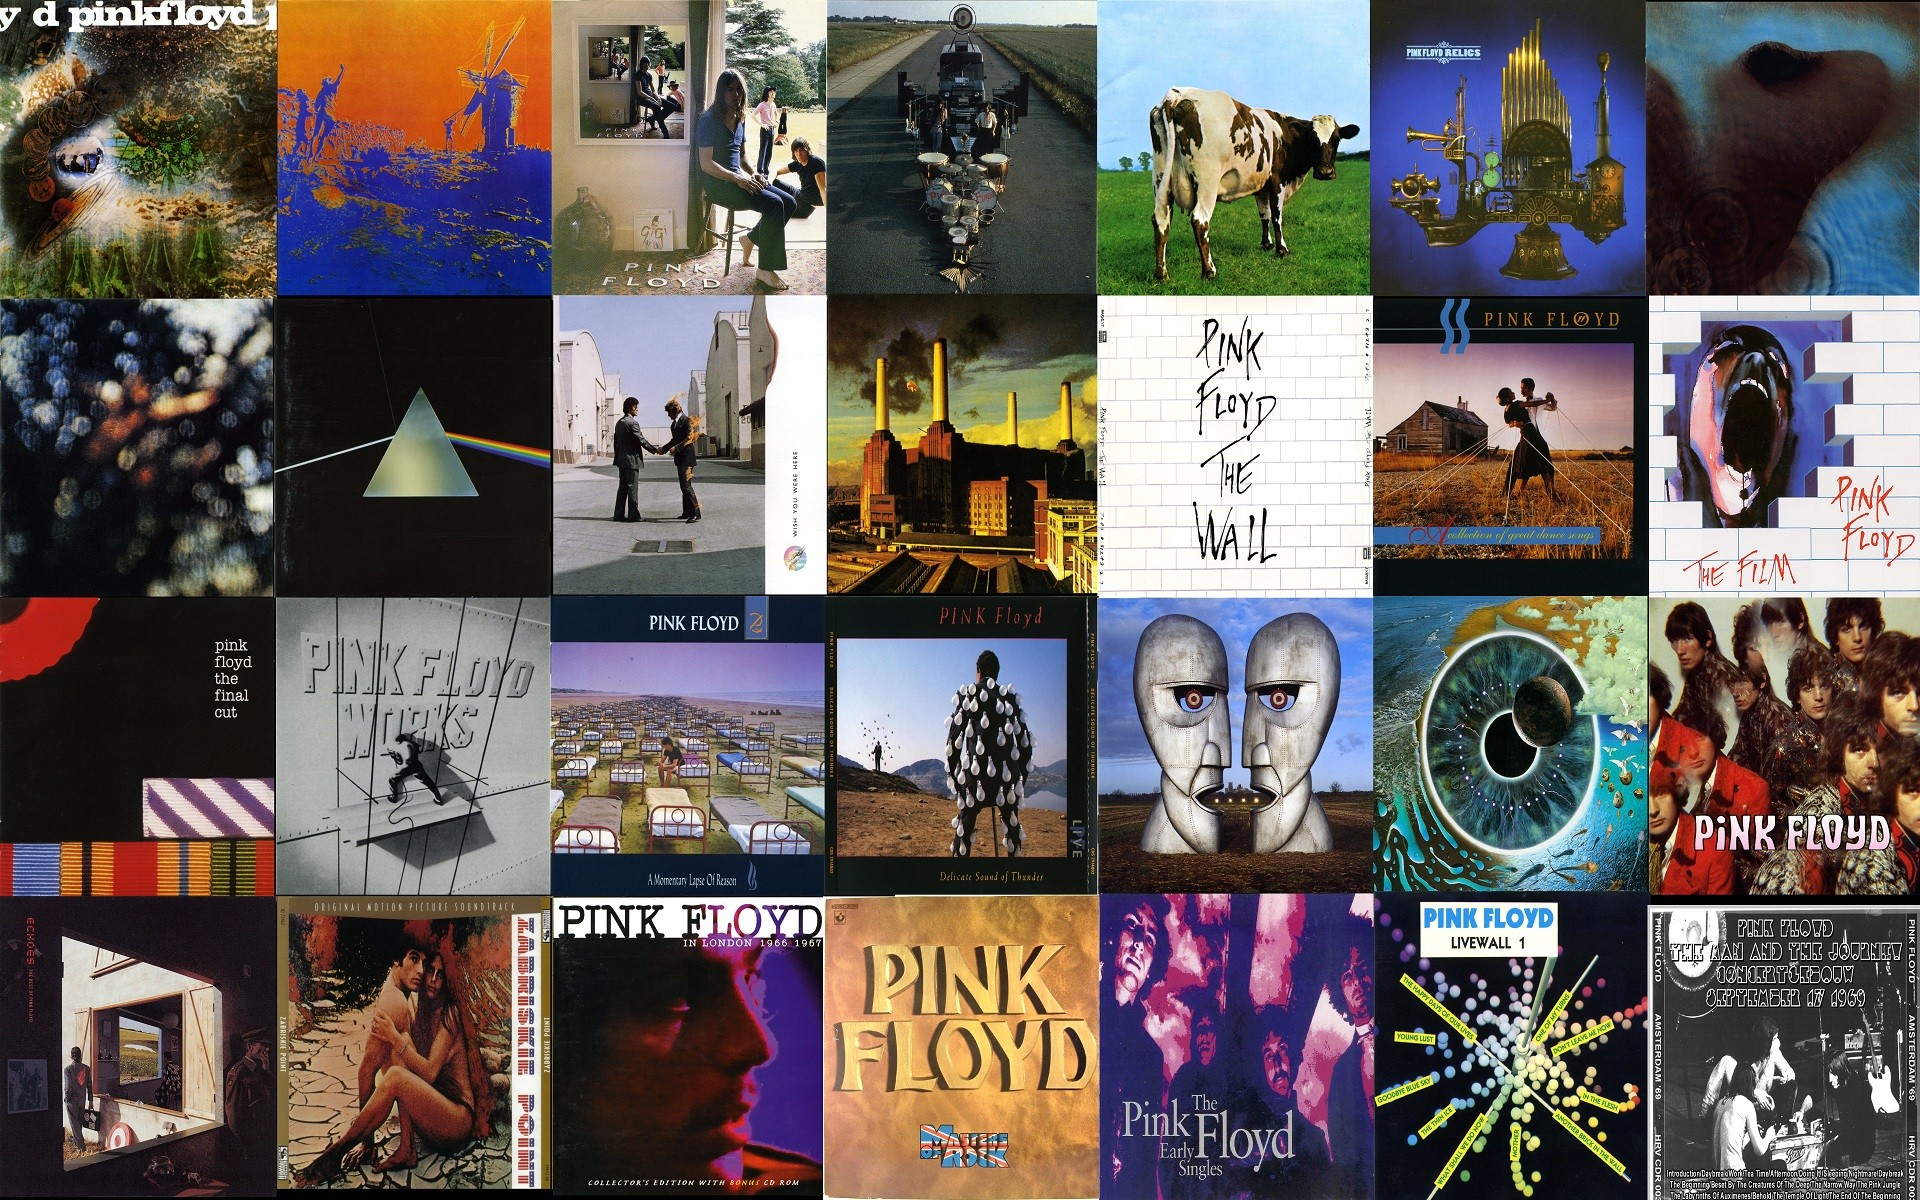 1920x1200 Pink Floyd hard rock classic retro bands groups album covers logo wallpaper  |  | 26108 | WallpaperUP